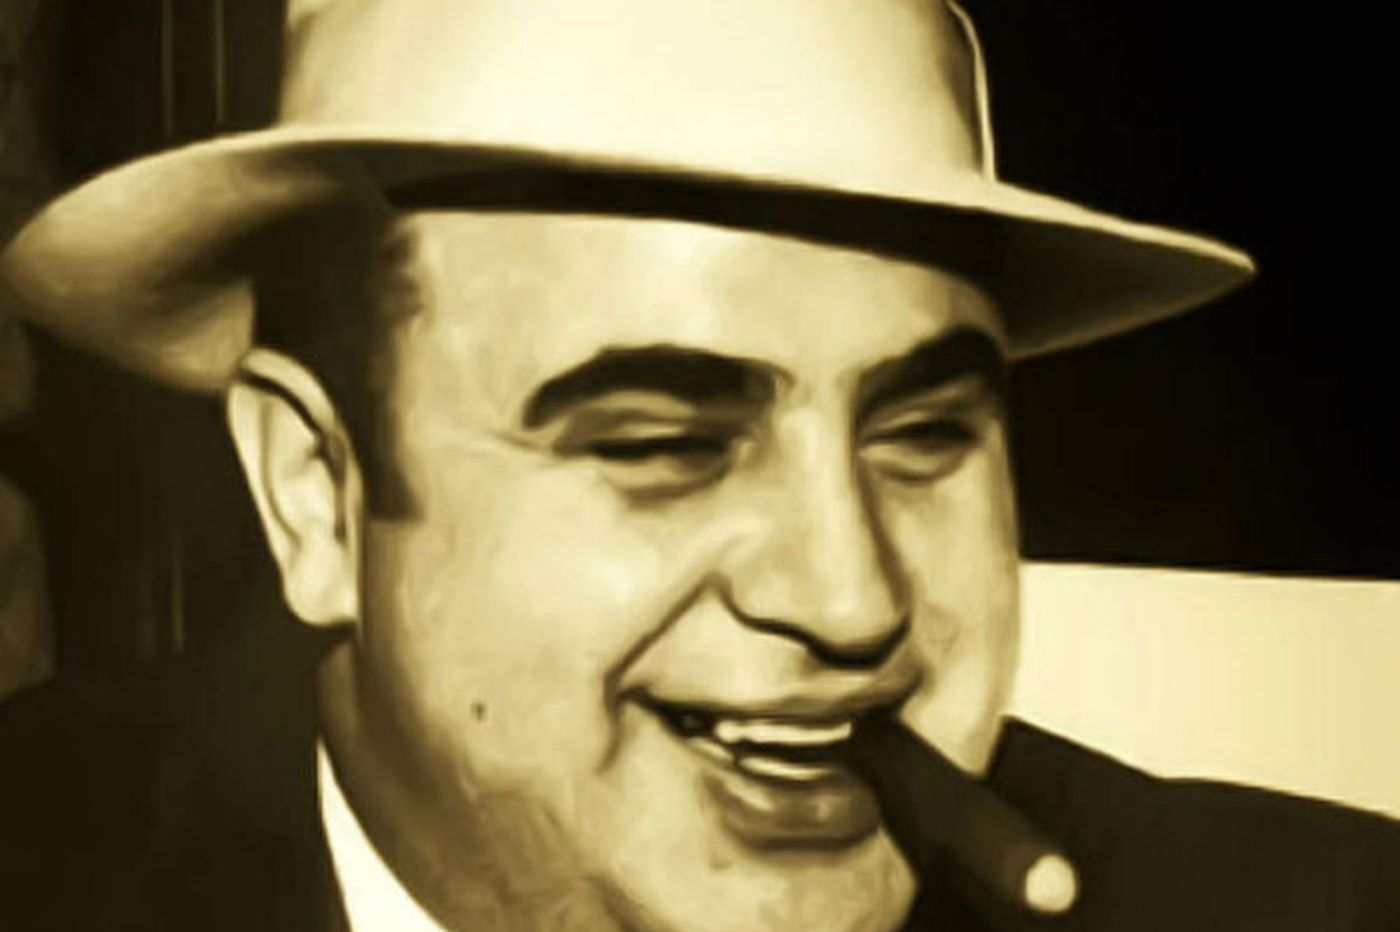 Al Capone, H.H. Holmes, other notorious figures landed on 6th floor of Philly's City Hall